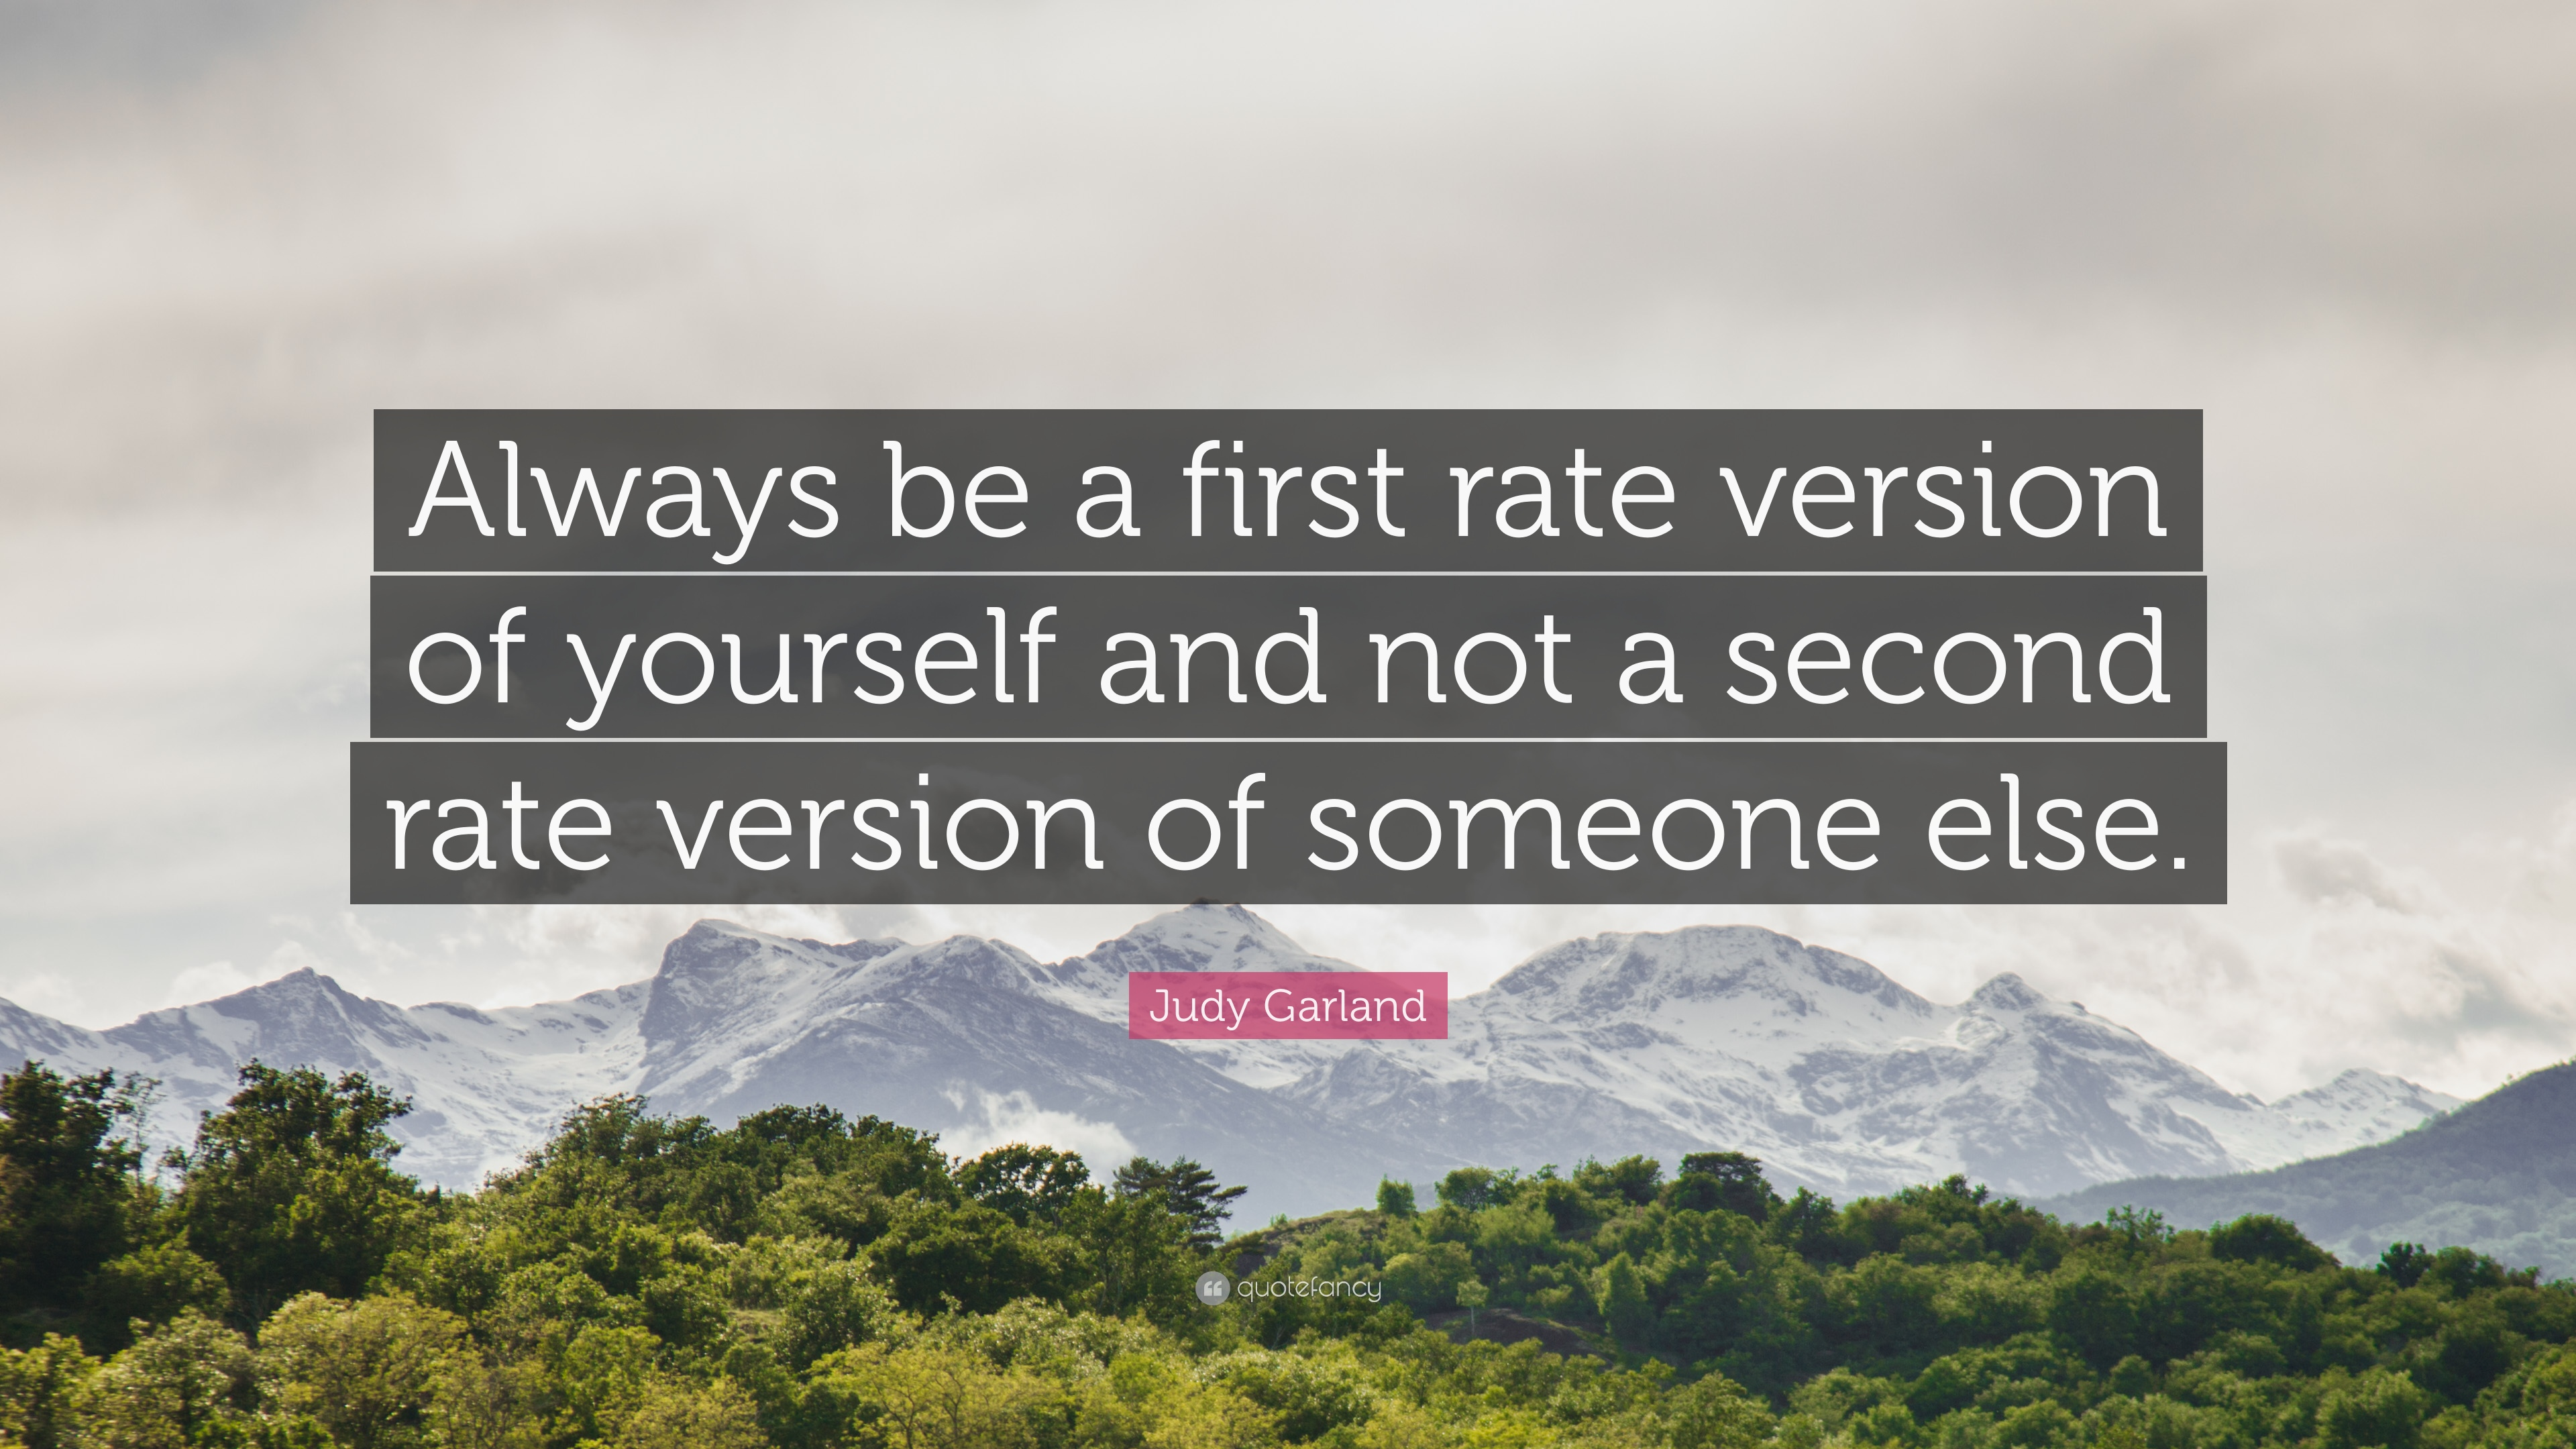 """Judy Garland Quote: """"Always be a first rate version of yourself and not a  second rate version of someone else."""" (20 wallpapers) - Quotefancy"""